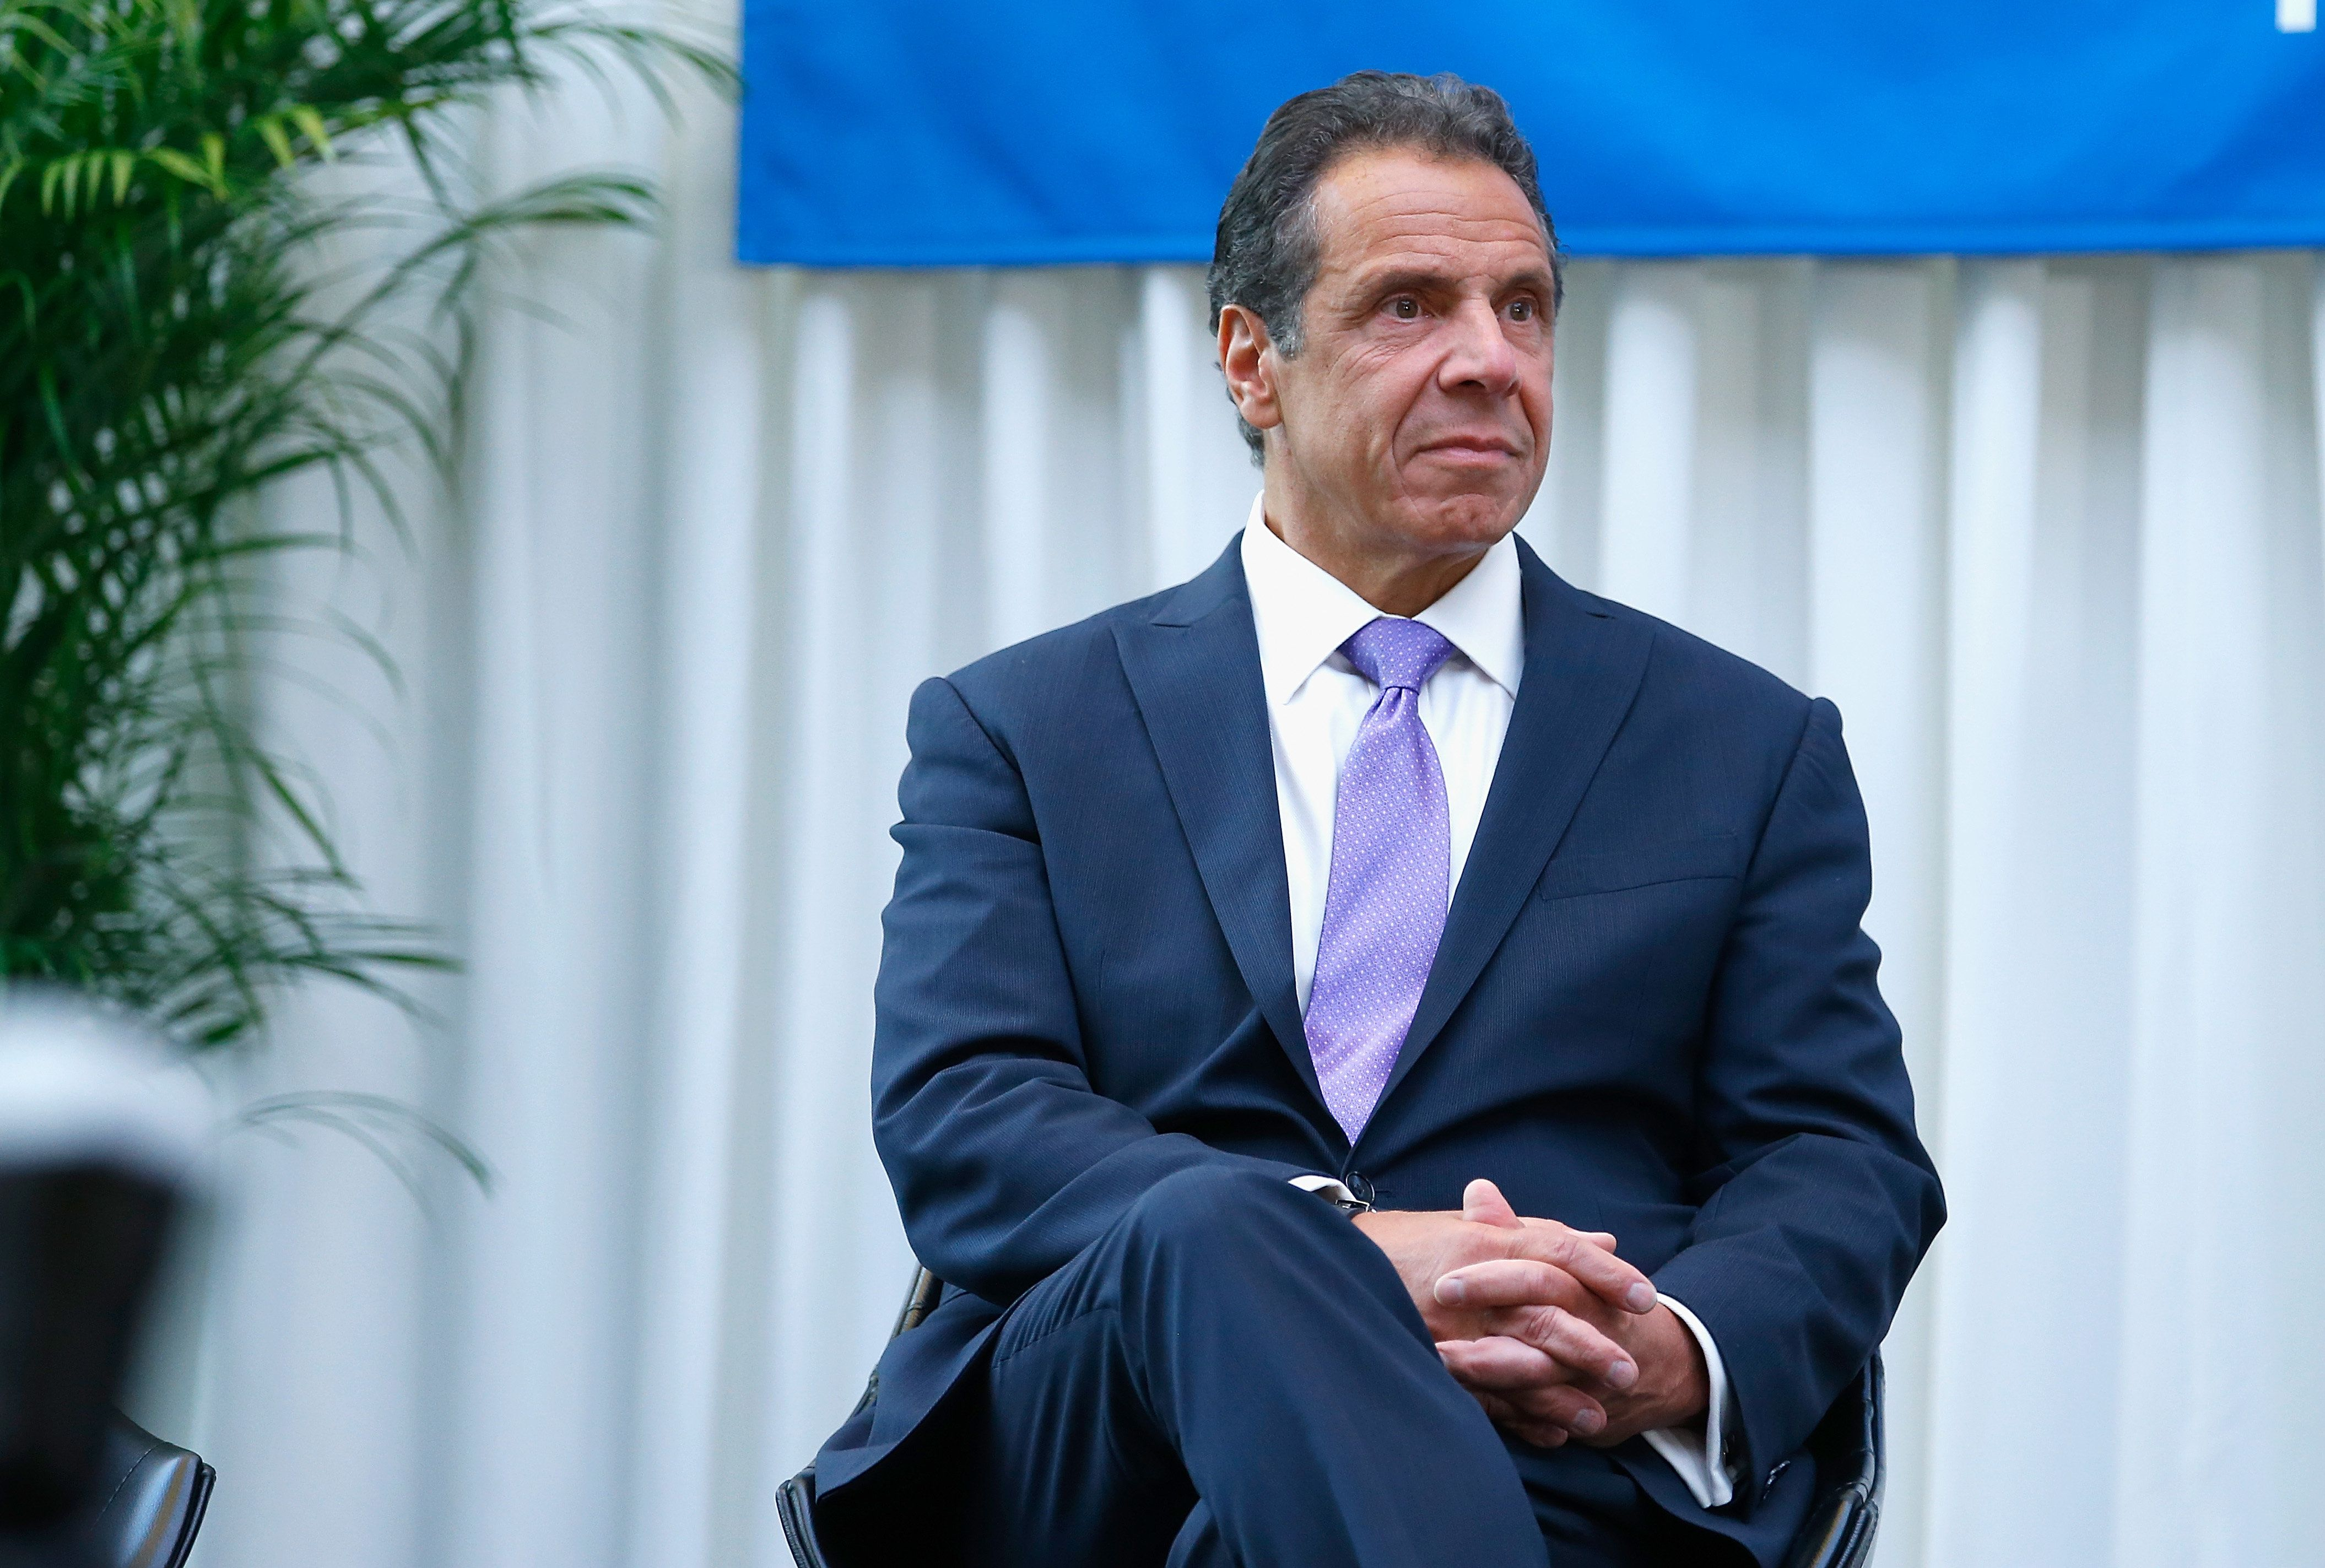 NEW YORK, NY - JULY 18:  New York State Governor, Andrew Cuomo attends  the Madison Square Garden celebration of Billy Joel's 100th lifetime show at Madison Square Garden on July 18, 2018 in New York City.  (Photo by John Lamparski/WireImage)